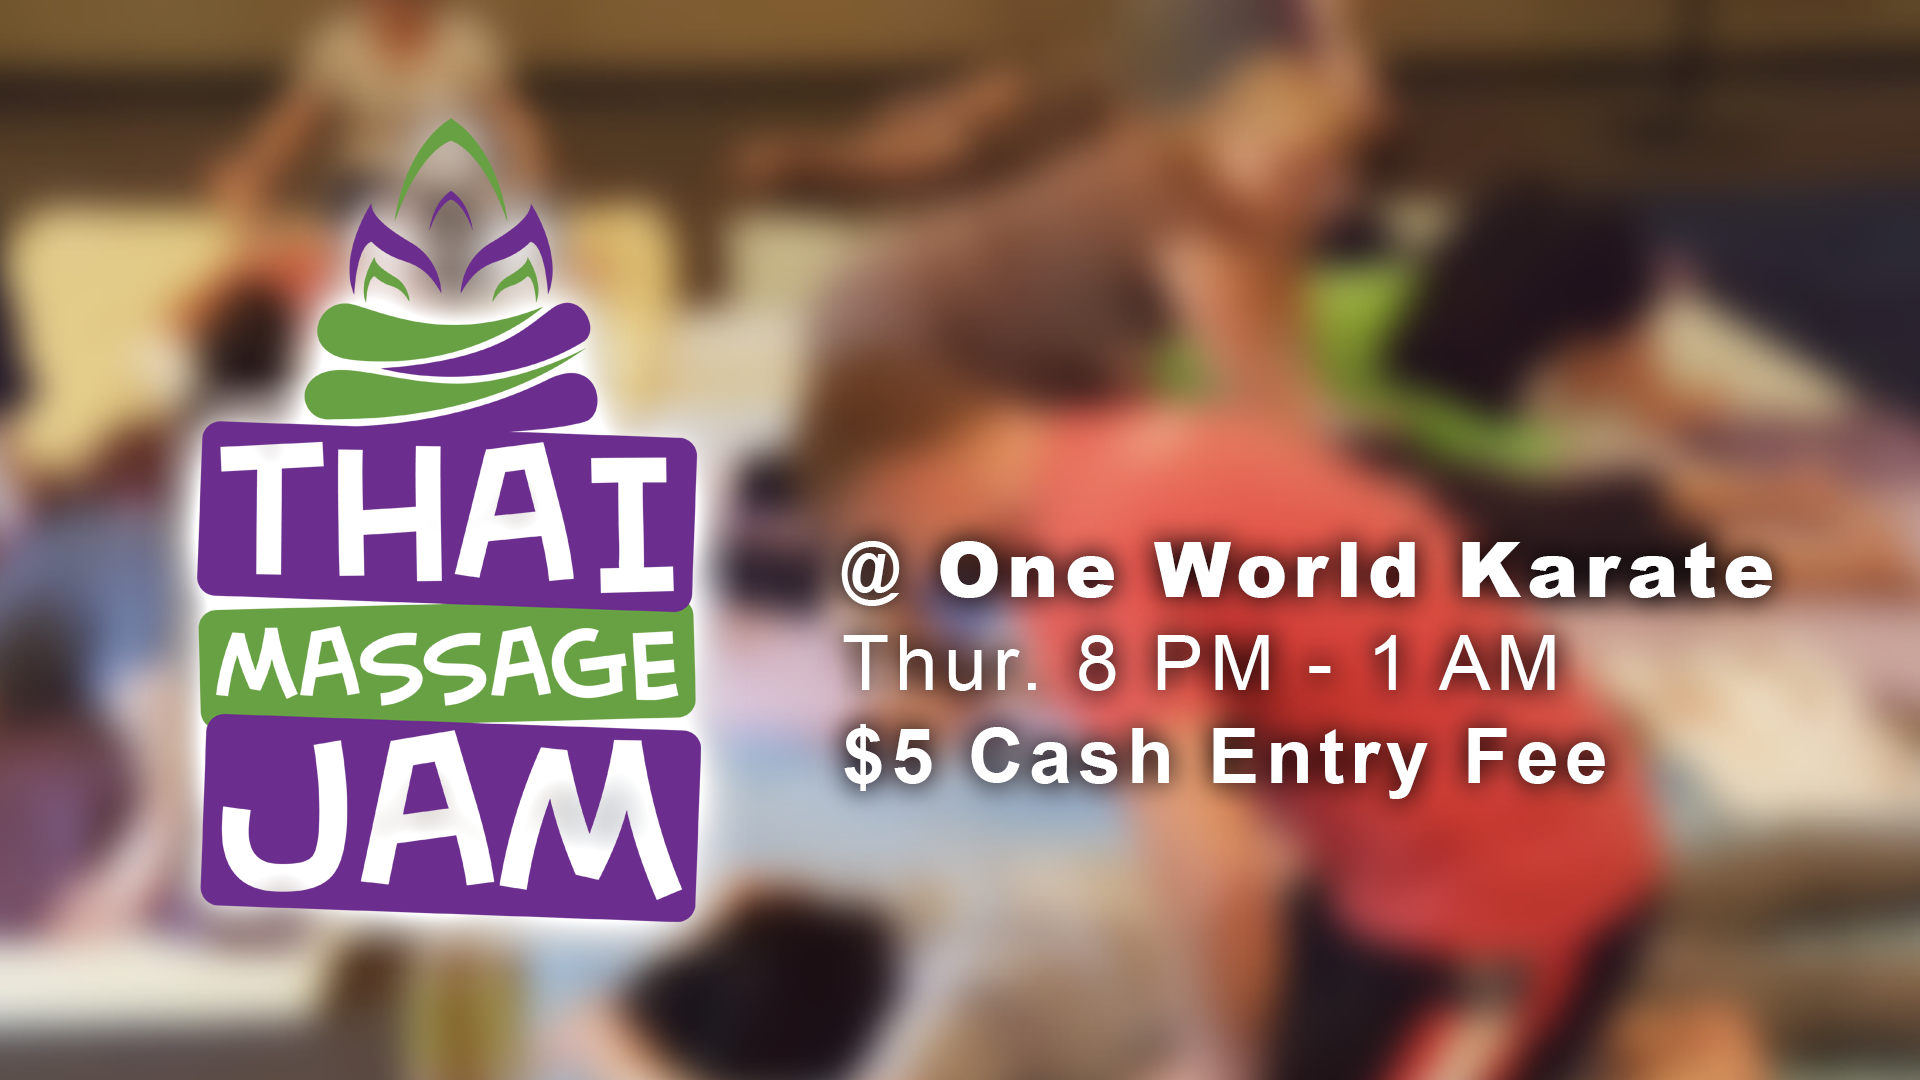 Thai Massage Jam Event Cover Photo